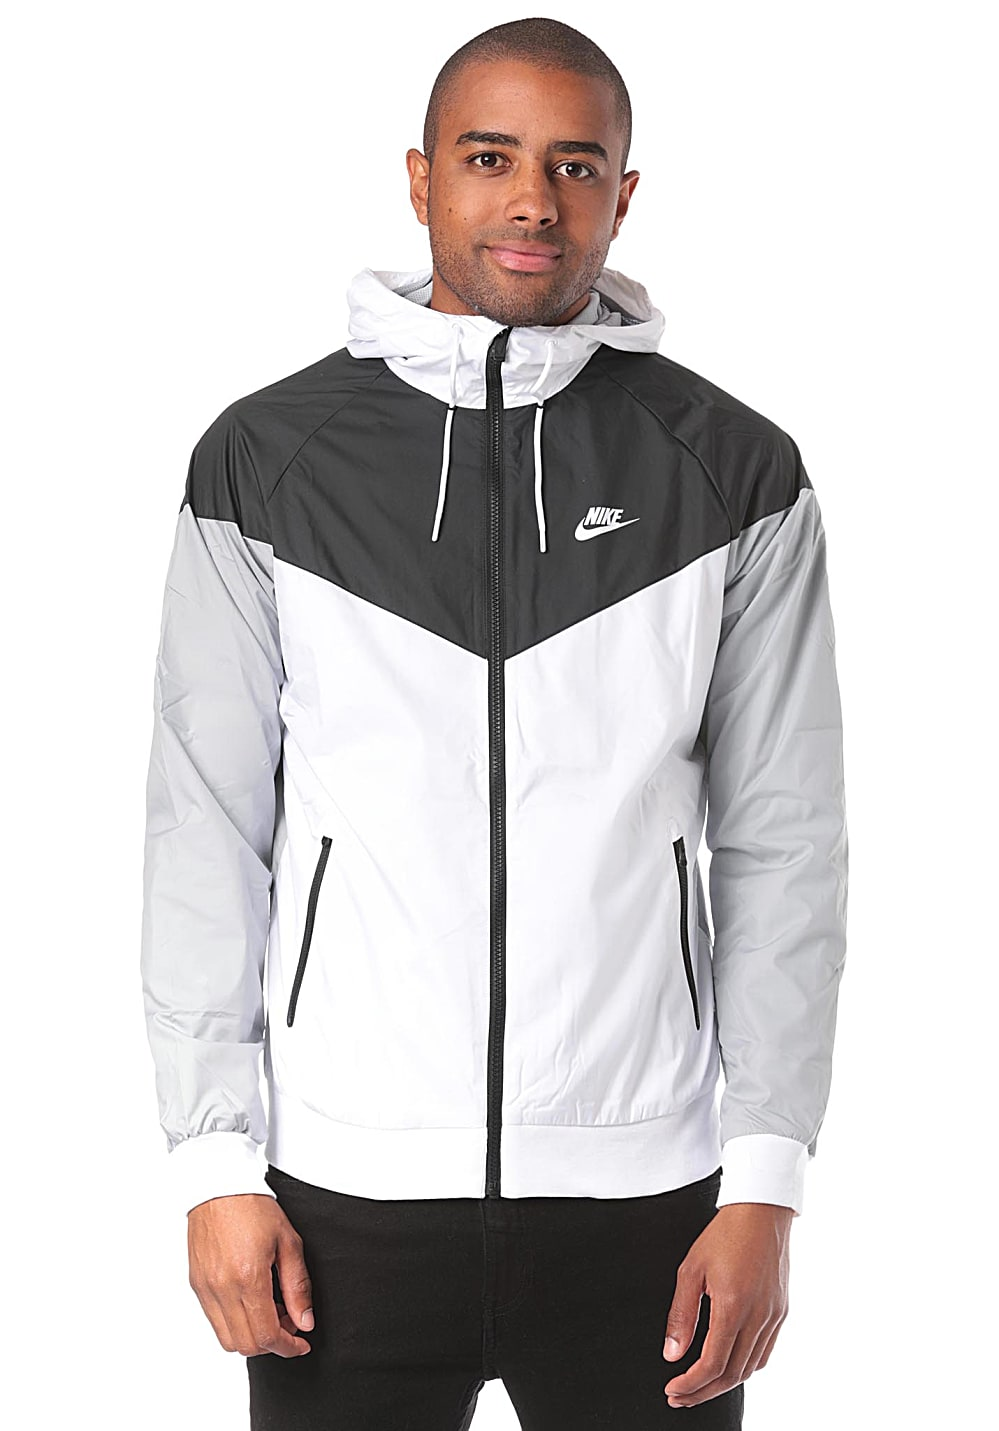 clearance sale wholesale outlet detailed pictures NIKE SPORTSWEAR Windrunner - Jacke für Herren - Schwarz